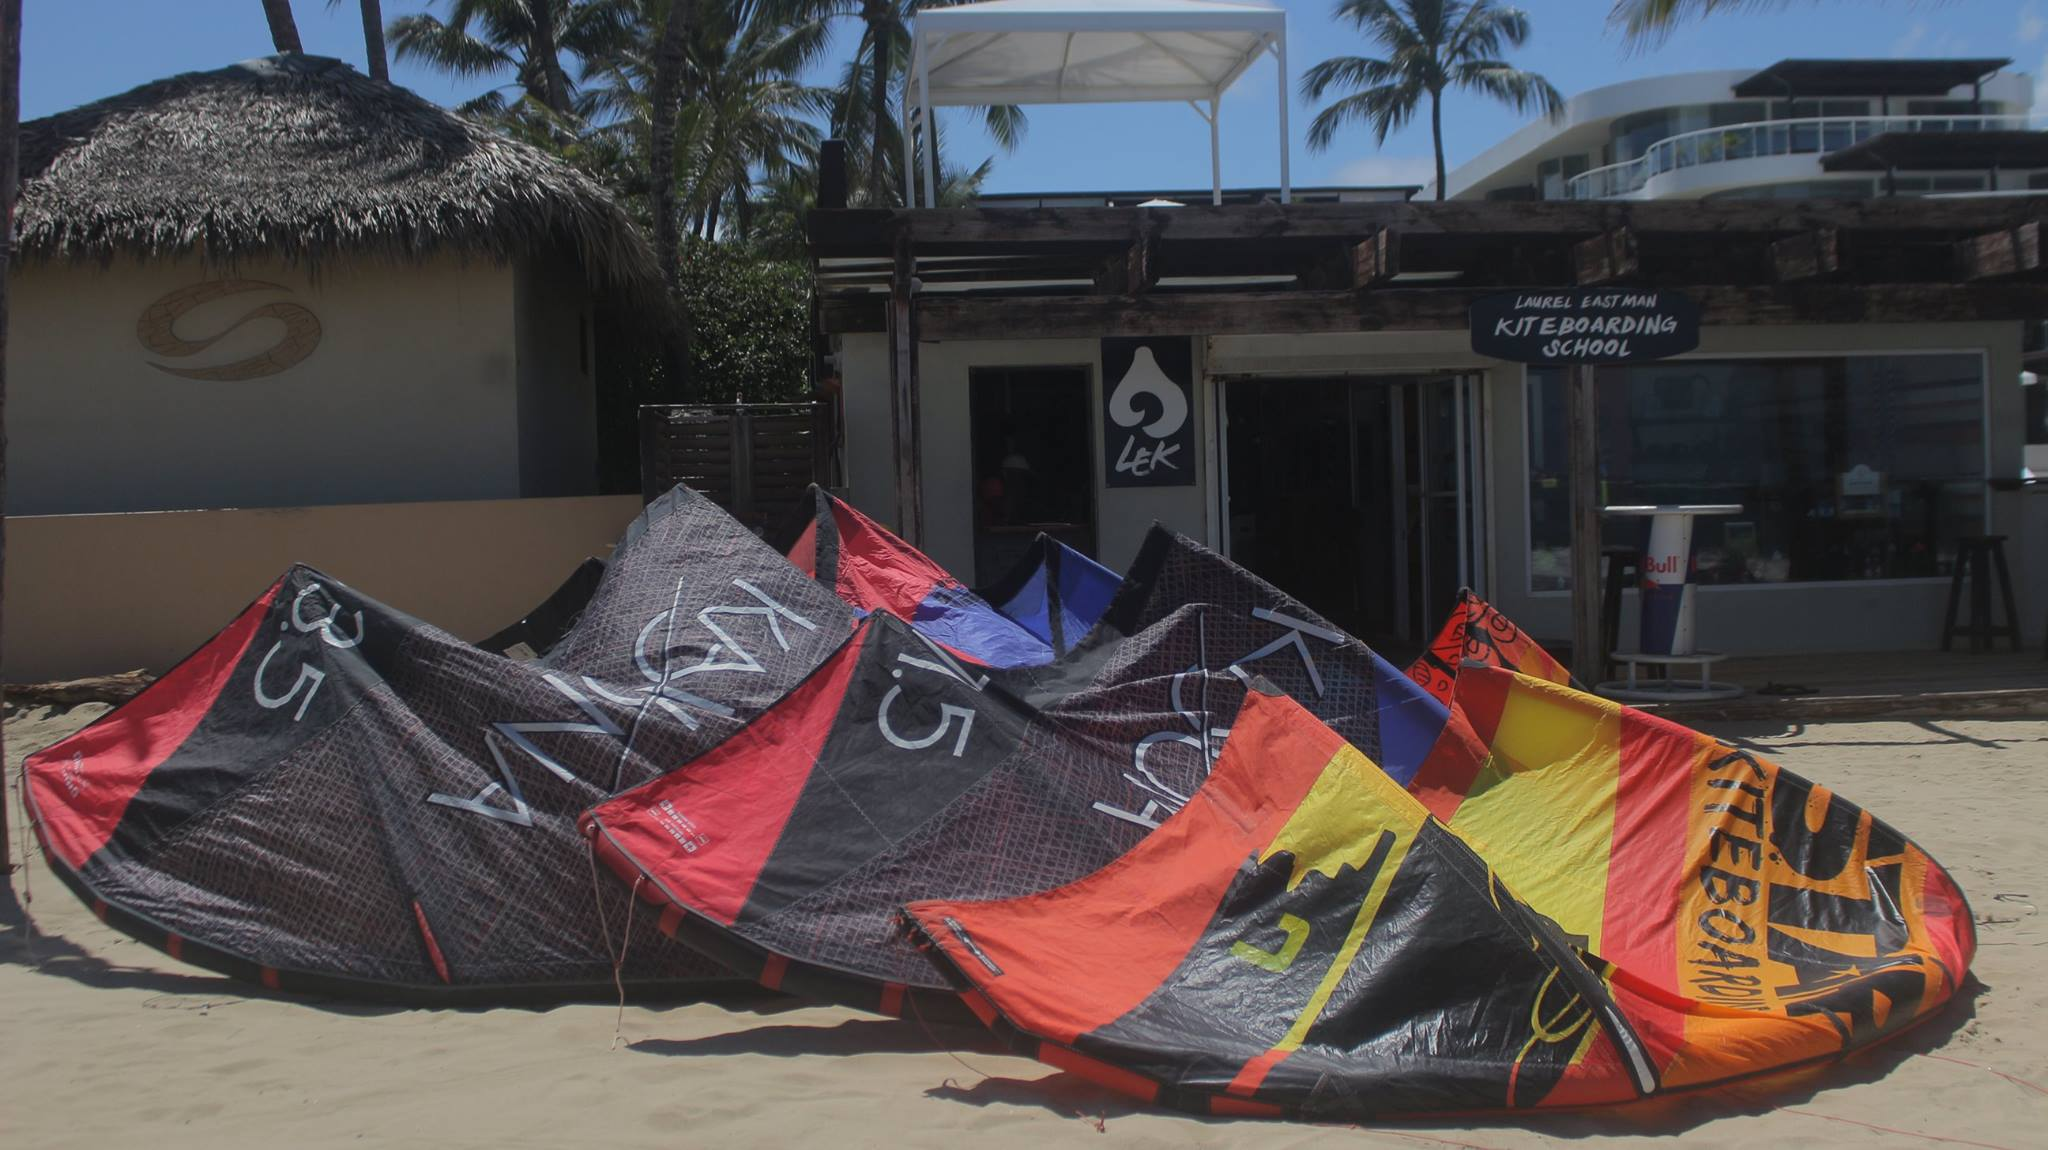 Kiteboarding Gear Used For Sale at LEK Kite School